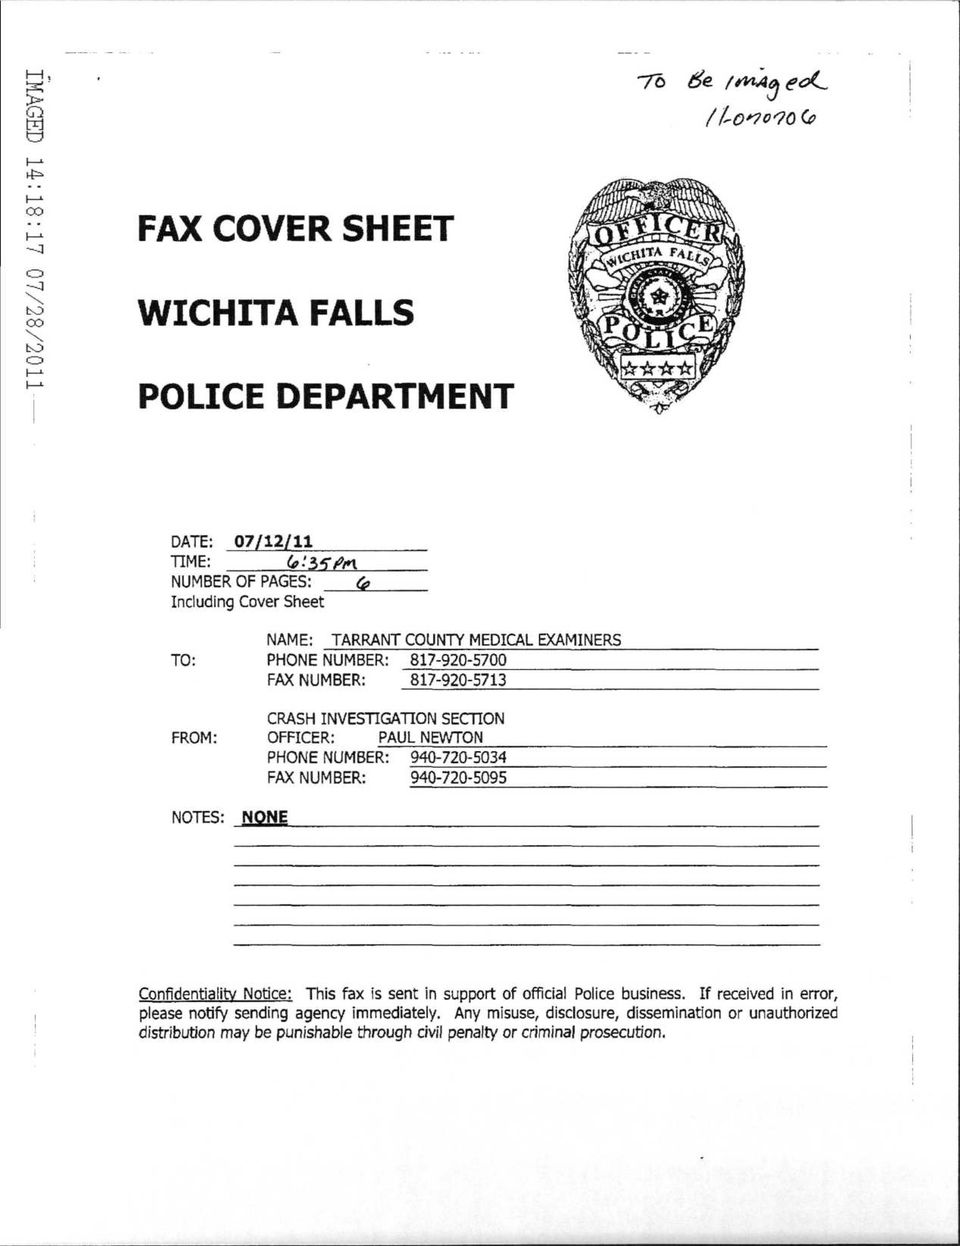 NUMBER: 940-720-5034 FAX NUMBER: 940-720-5095 NOTES: NONE Confidentiality Notice: This fax is sent in support of official Police business.